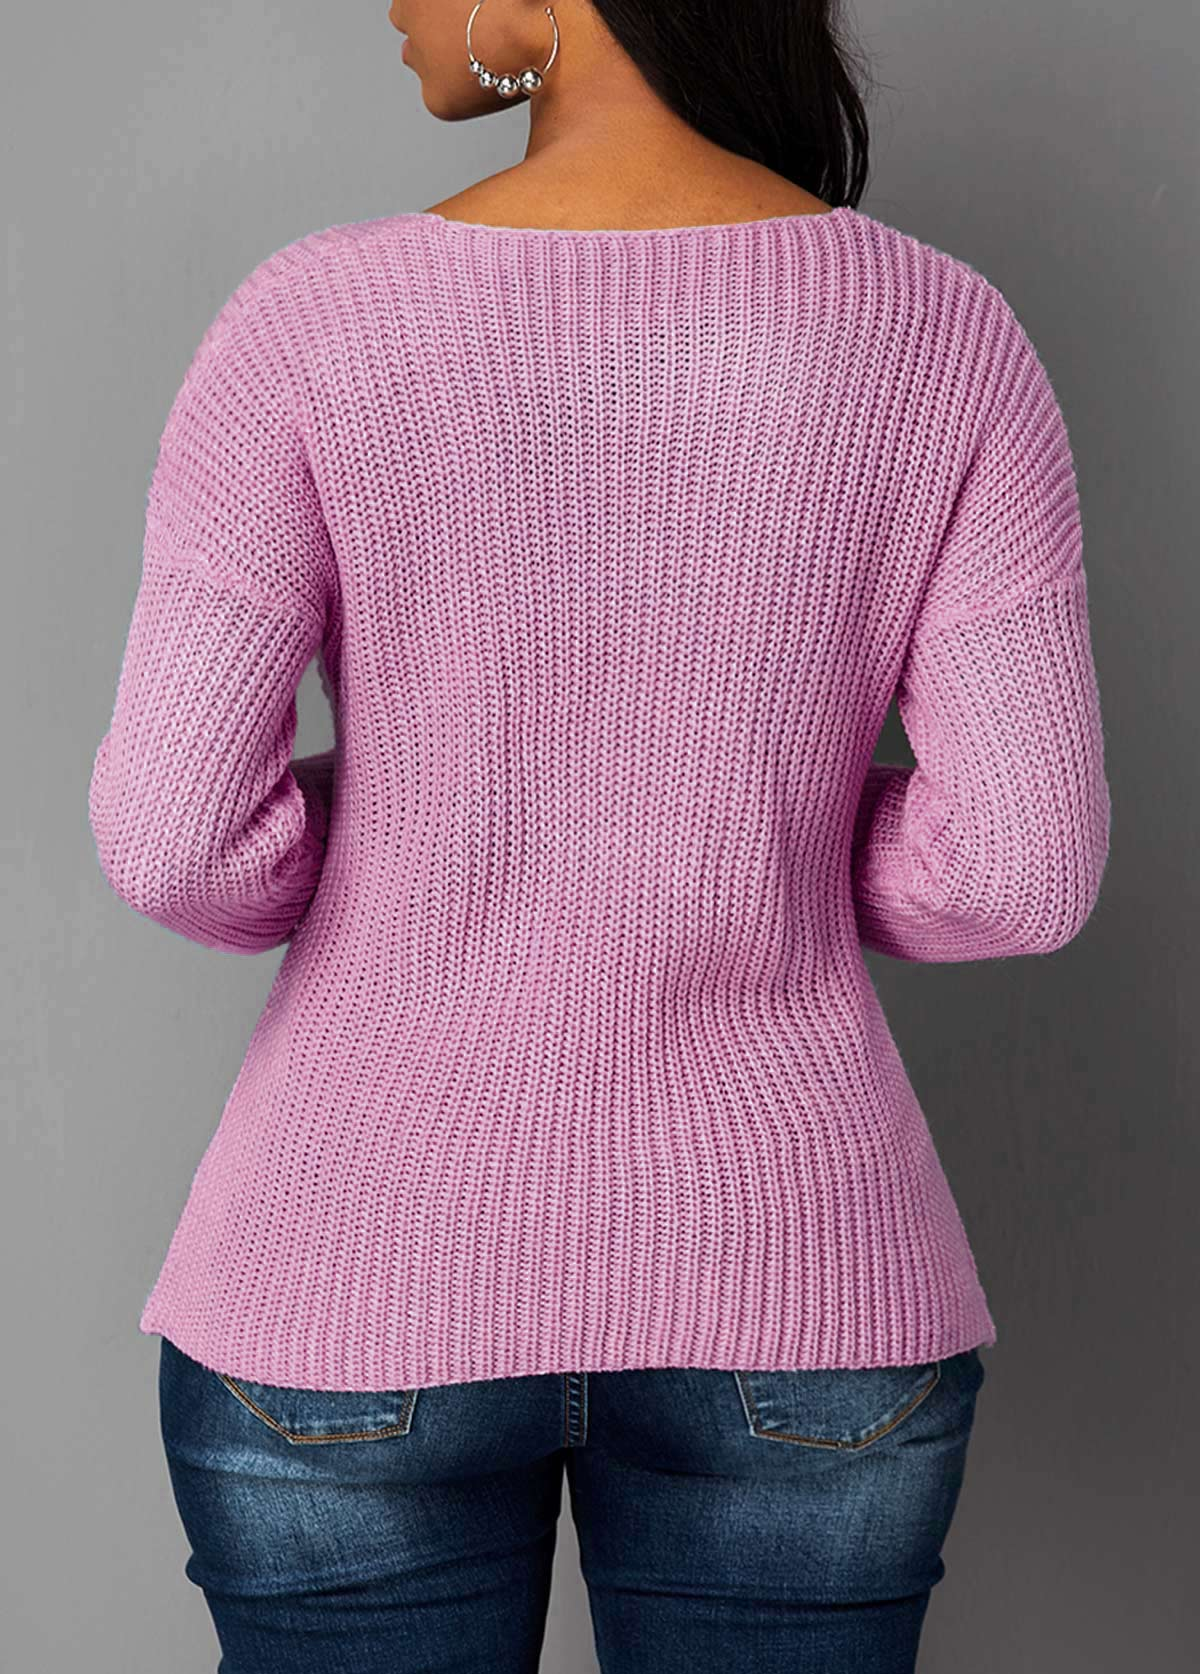 Cutout Front Asymmetric Hem Light Pink Sweater